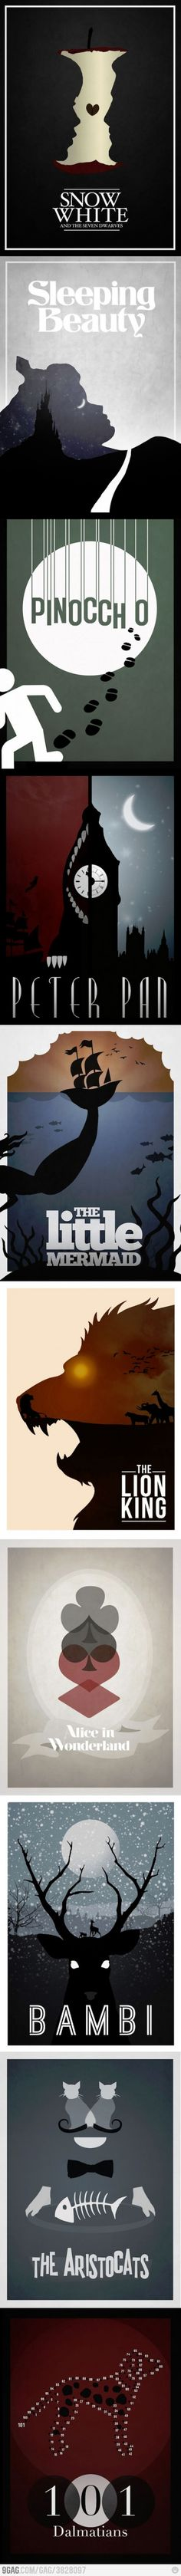 Minimalist Posters Of Disney Films. Not actually funny but cool and worth repinning.